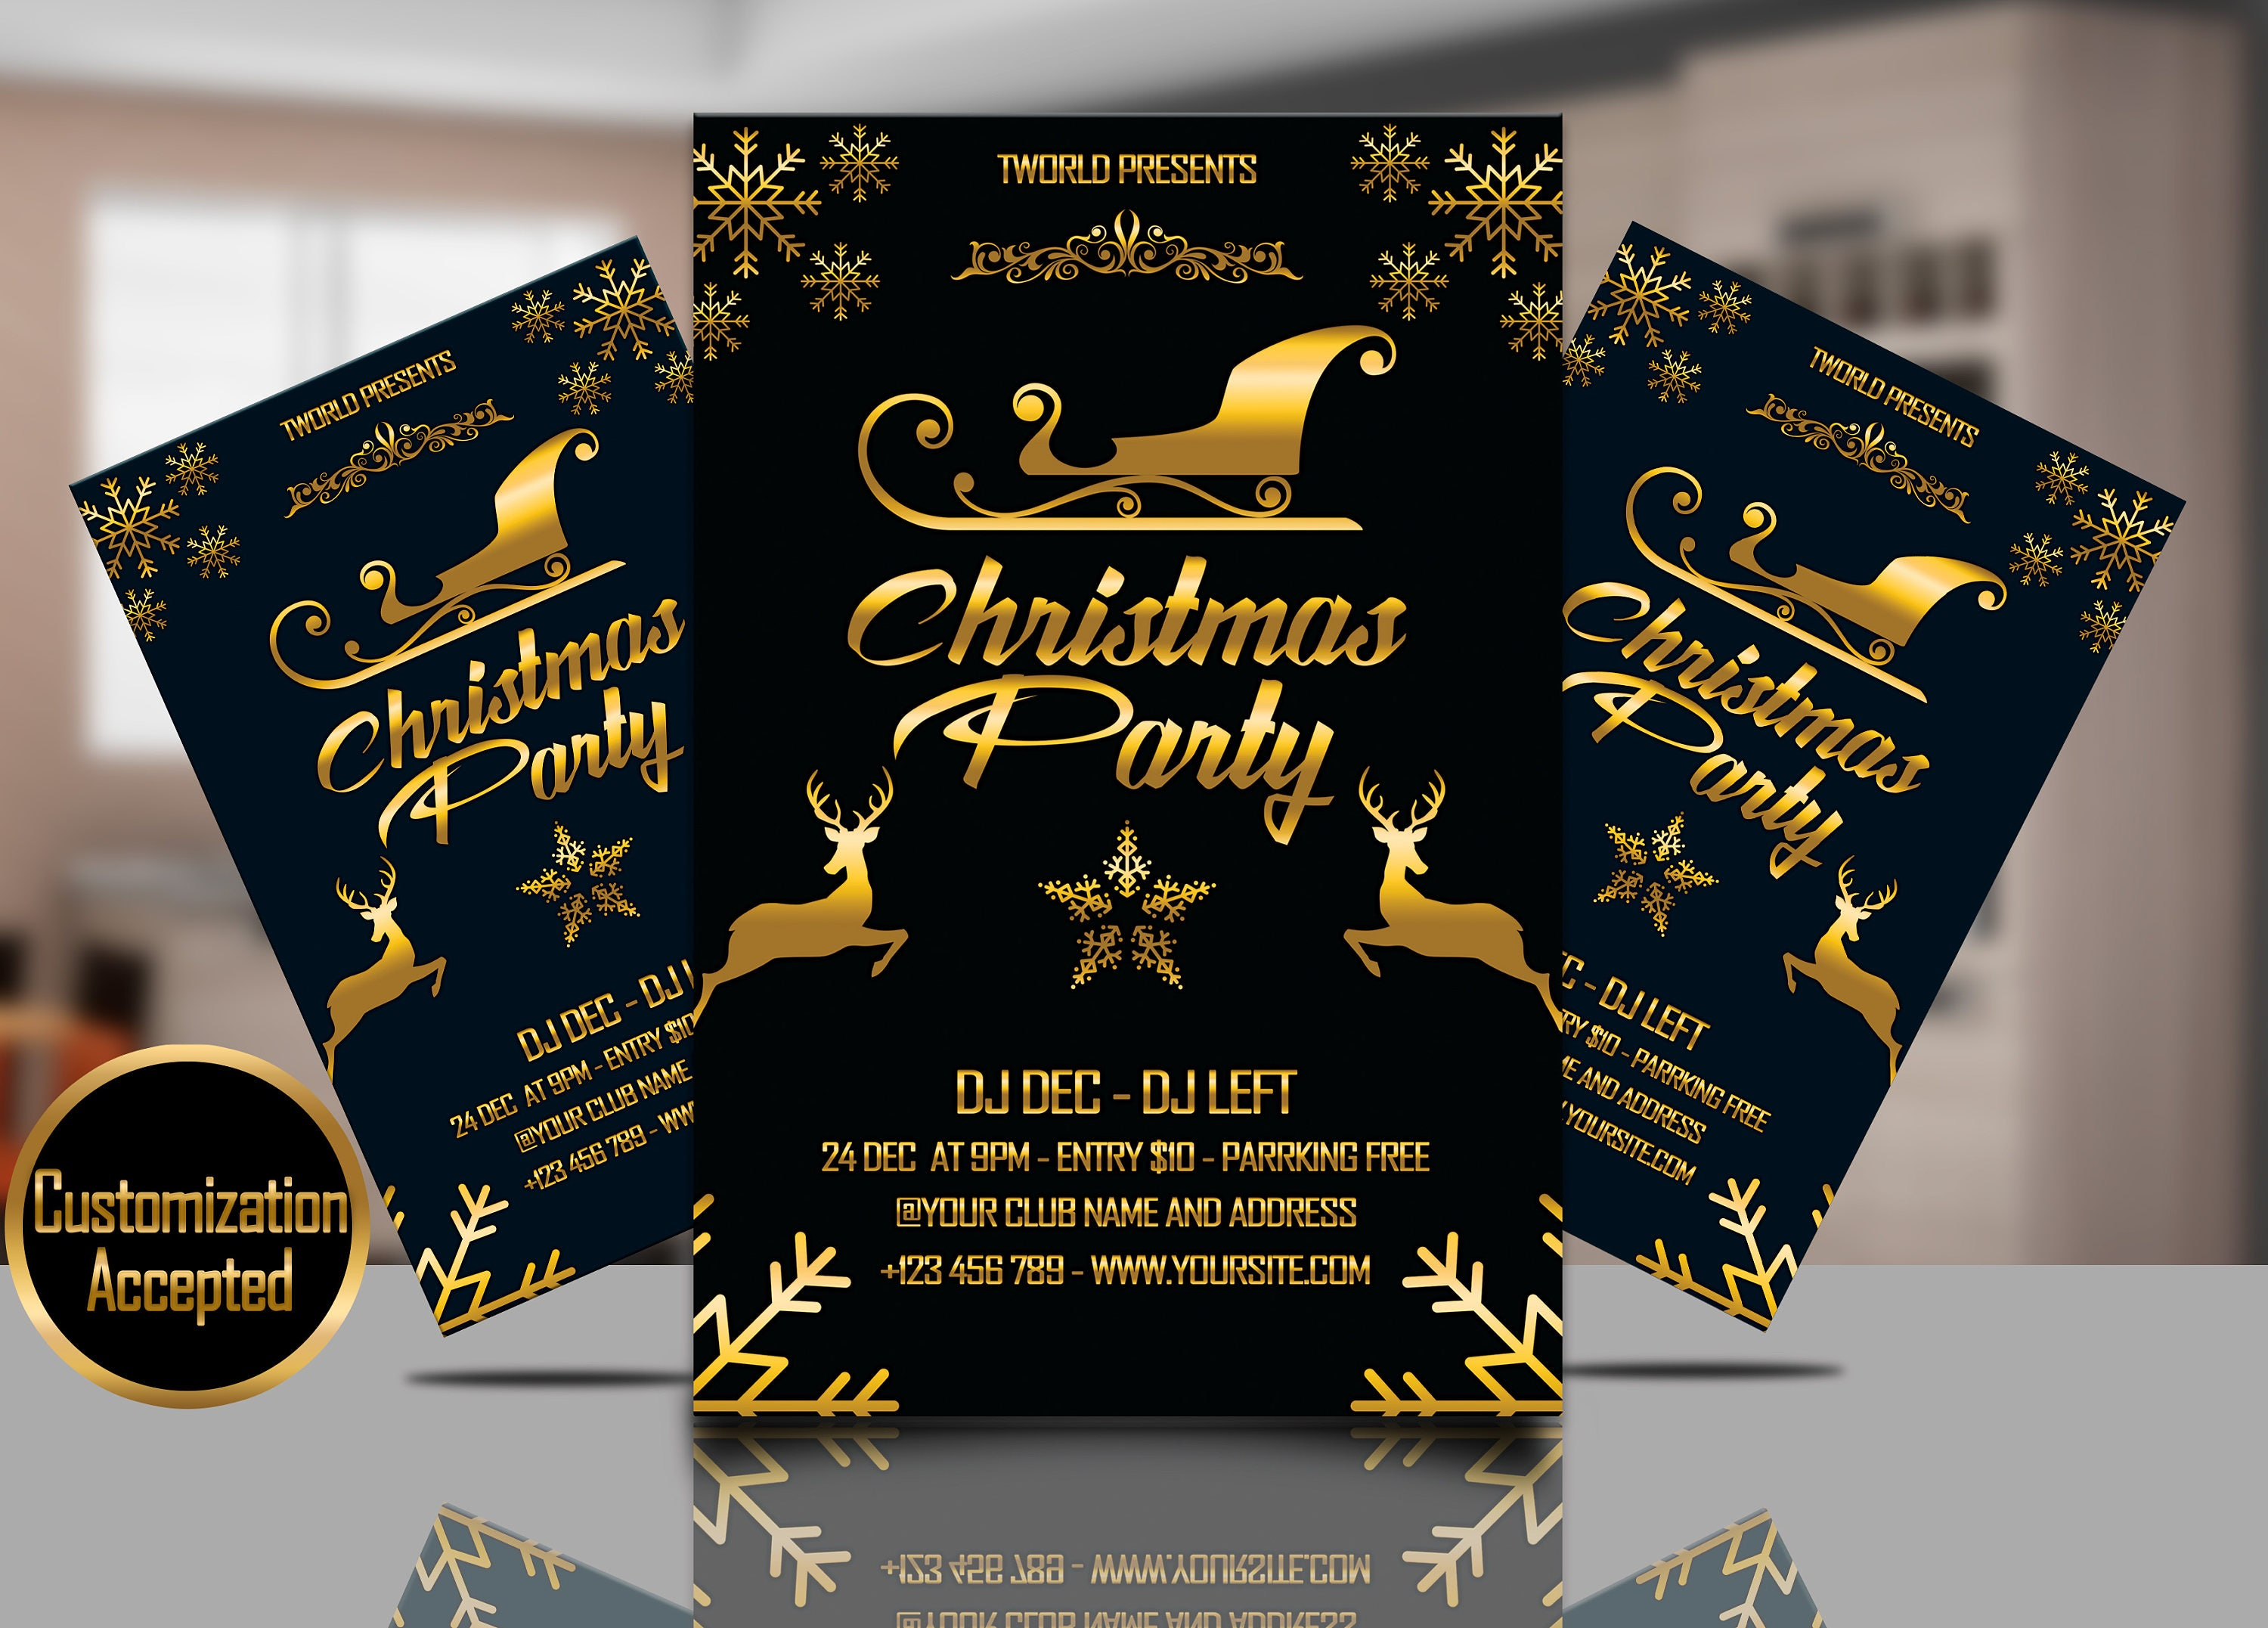 Christmas Party Invitation Flyer Template | Christmas party | PSD ...